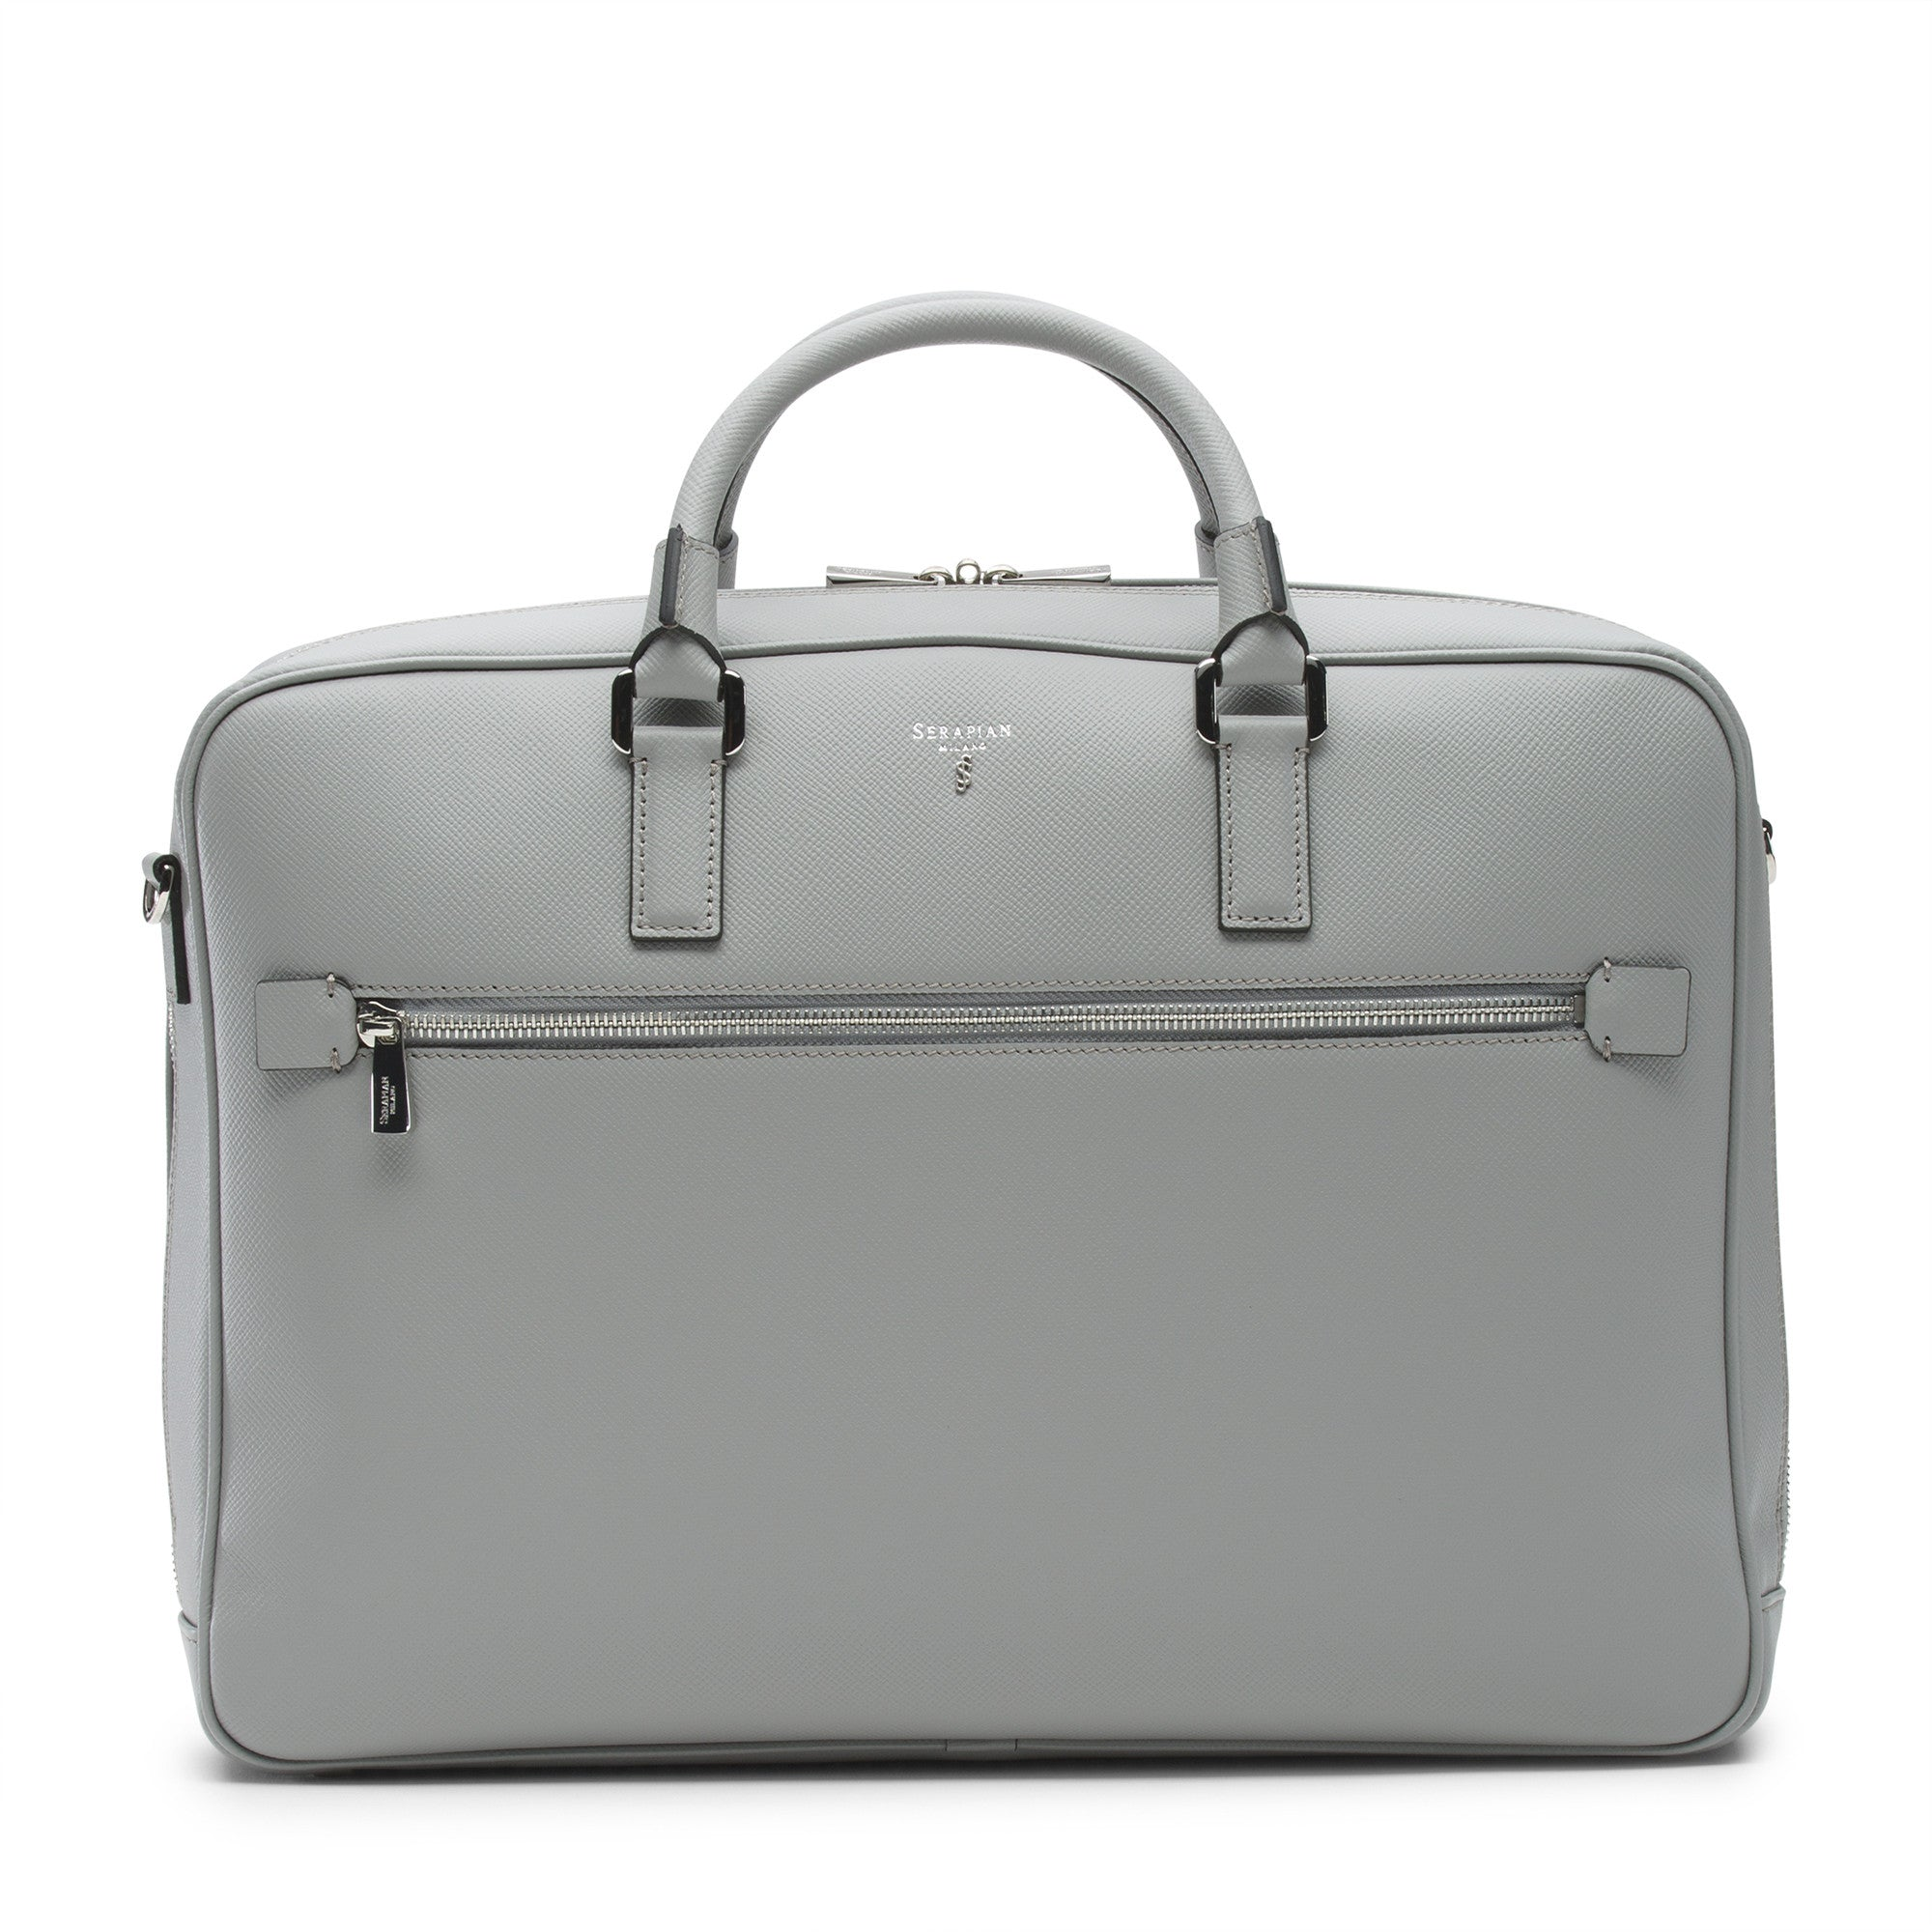 "Single briefcase with zip in scratch and water resistant light grey evolution leather. Attachable shoulder strap plus attached strap on the back to easily slip onto a wheeled trolley. Lined inside with microfiber suede, inside zippered pocket. Can hold up to a 15"" laptop."